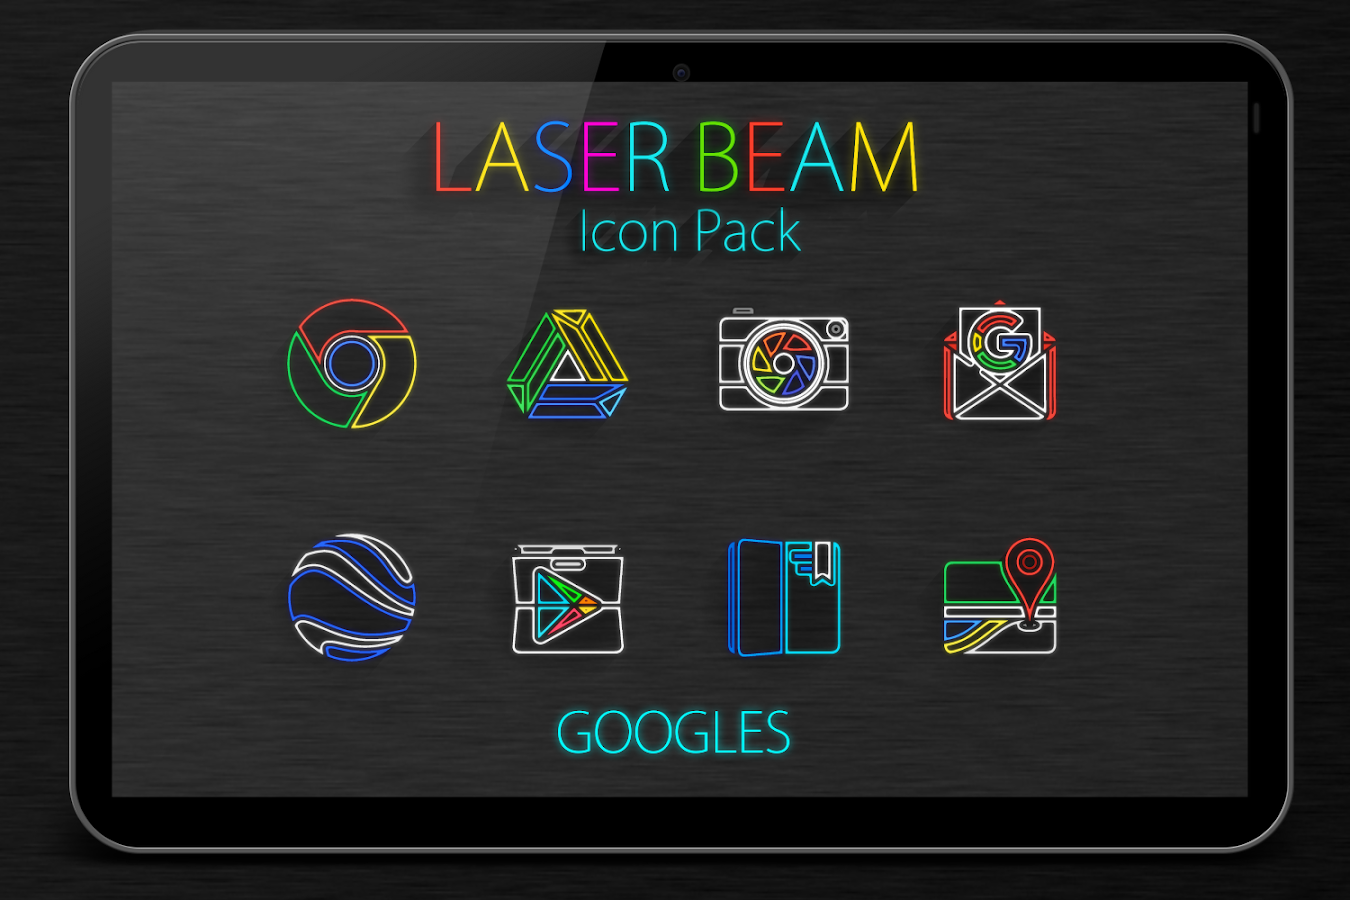 Laser Beam Icon Pack Screenshot 6